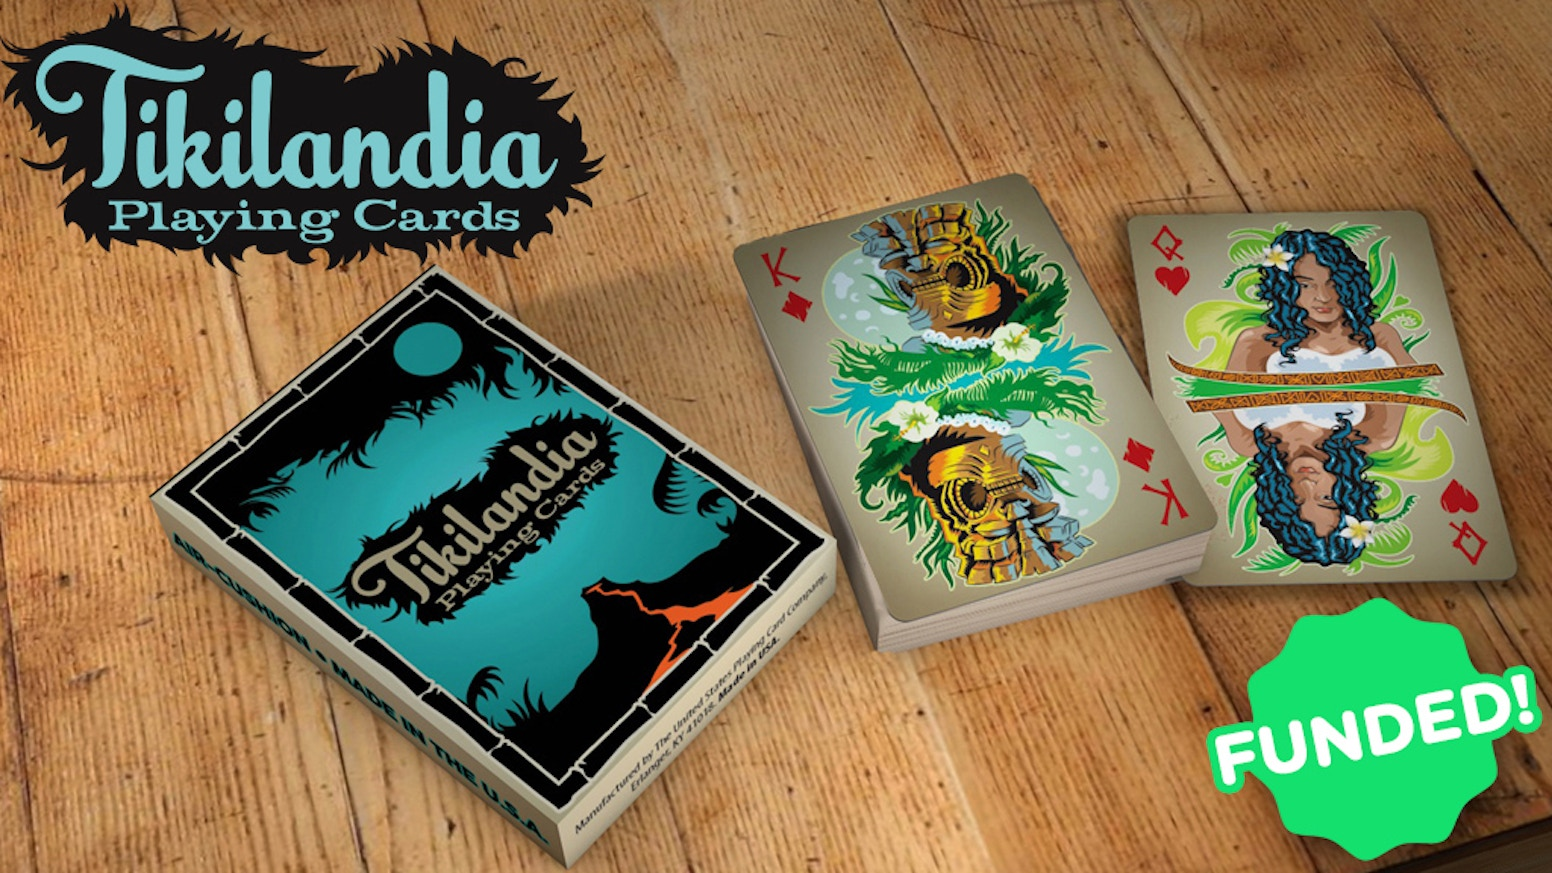 A card deck featuring the Tiki art of Robert Jimenez and made by USPCC in the U.S.A.